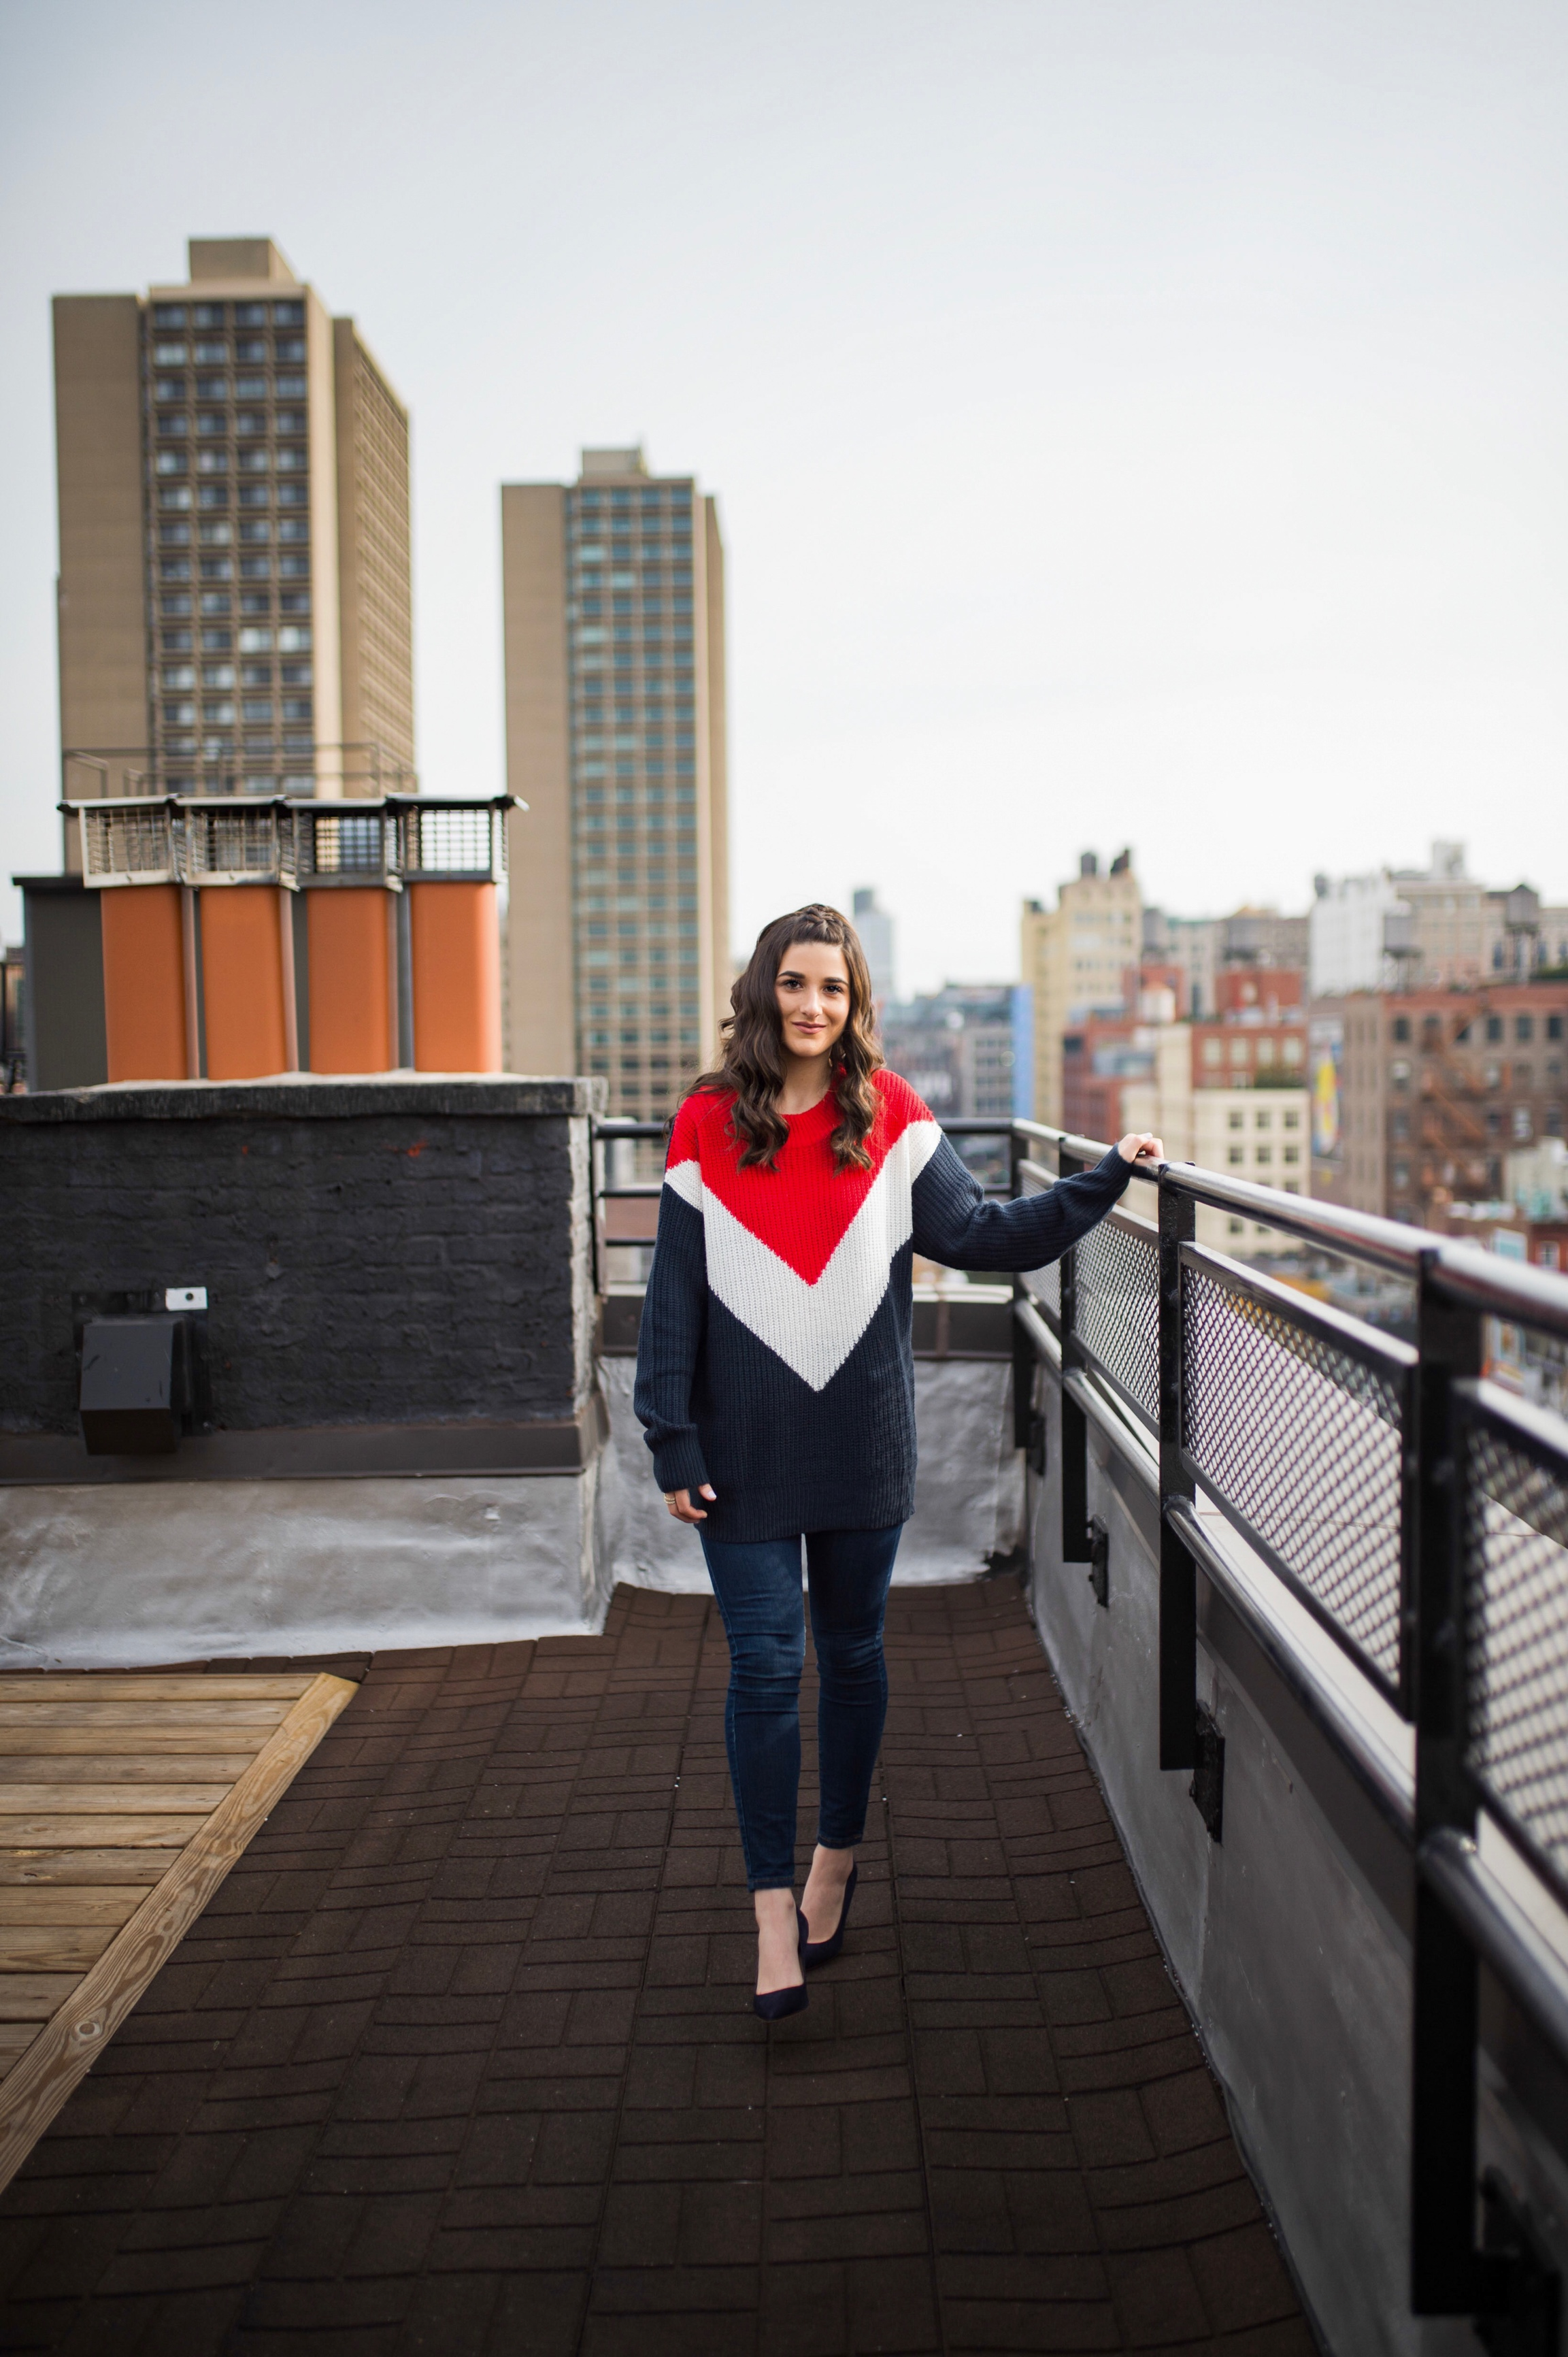 Advice For The Micro-influencer Oversized Sweater Navy Heels Esther Santer Fashion Blog NYC Street Style Blogger Outfit OOTD Trendy Shopping Subtle Balayage Highlights Hair Jeans Sally Hershberger Chic Girl How To Wear Red White Blue Winter Women 2018.jpg